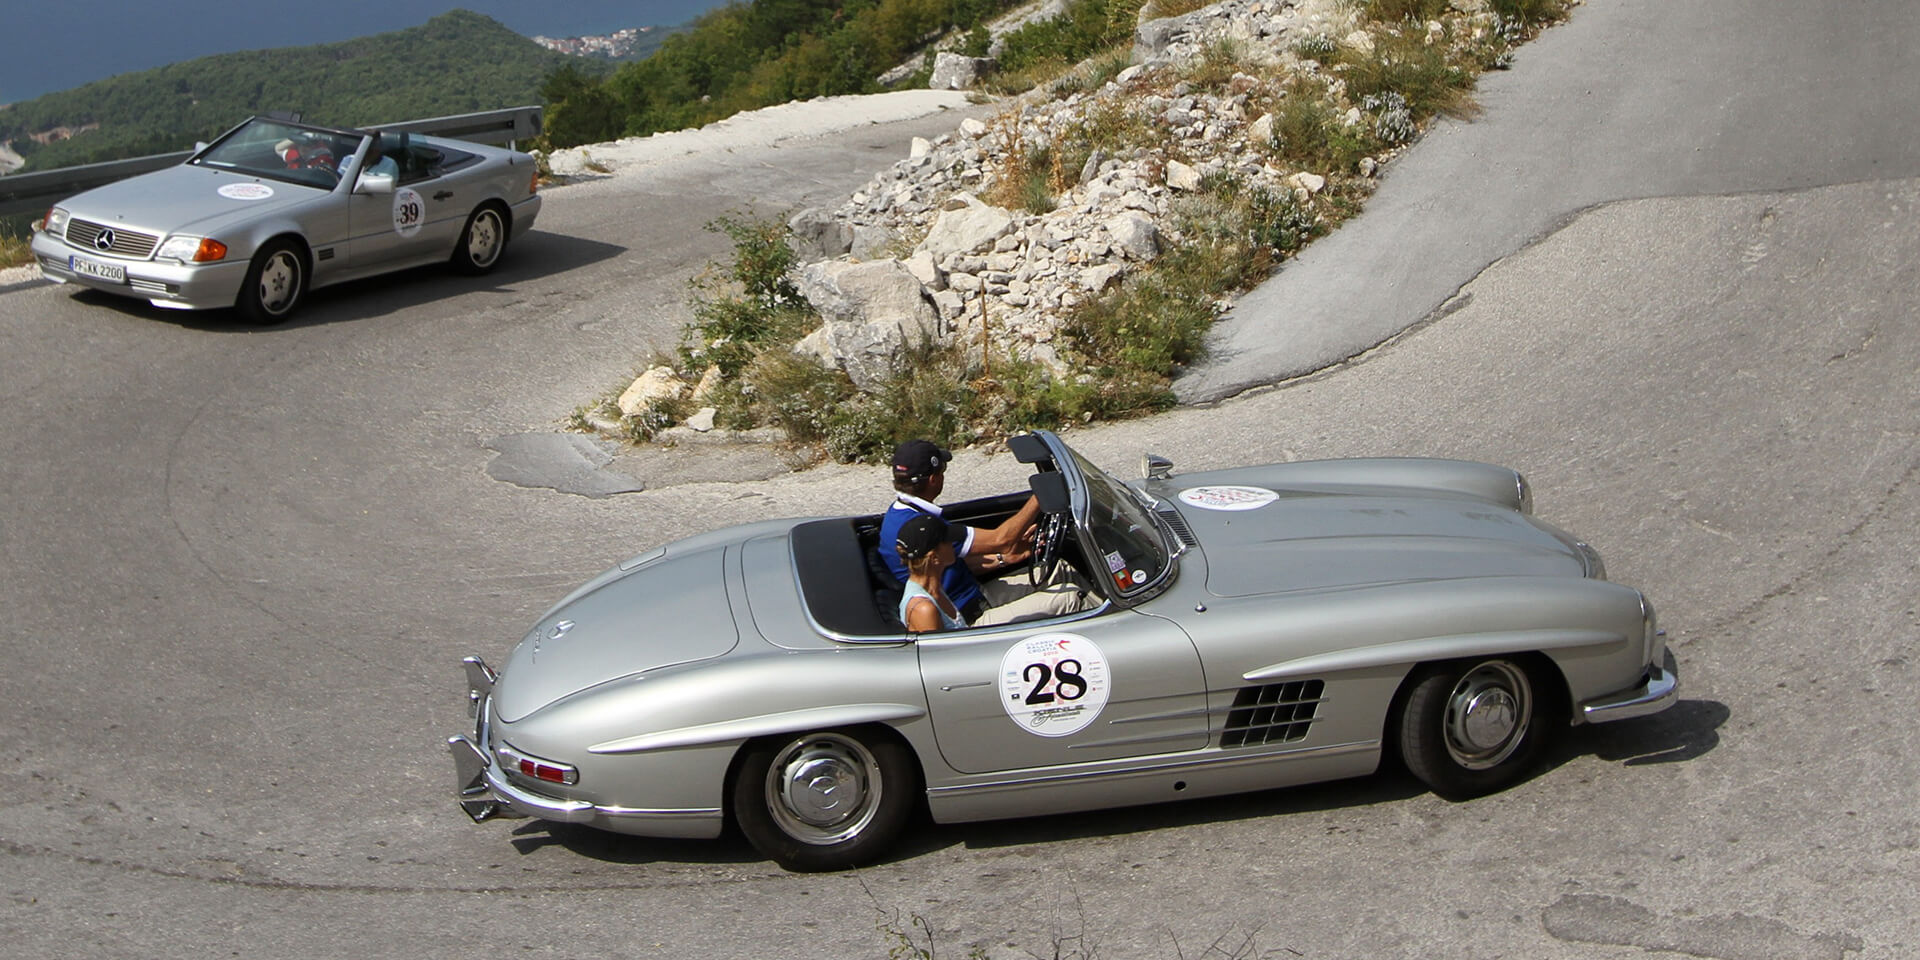 Mercedes 300 SL roadster at the Mille Miglia